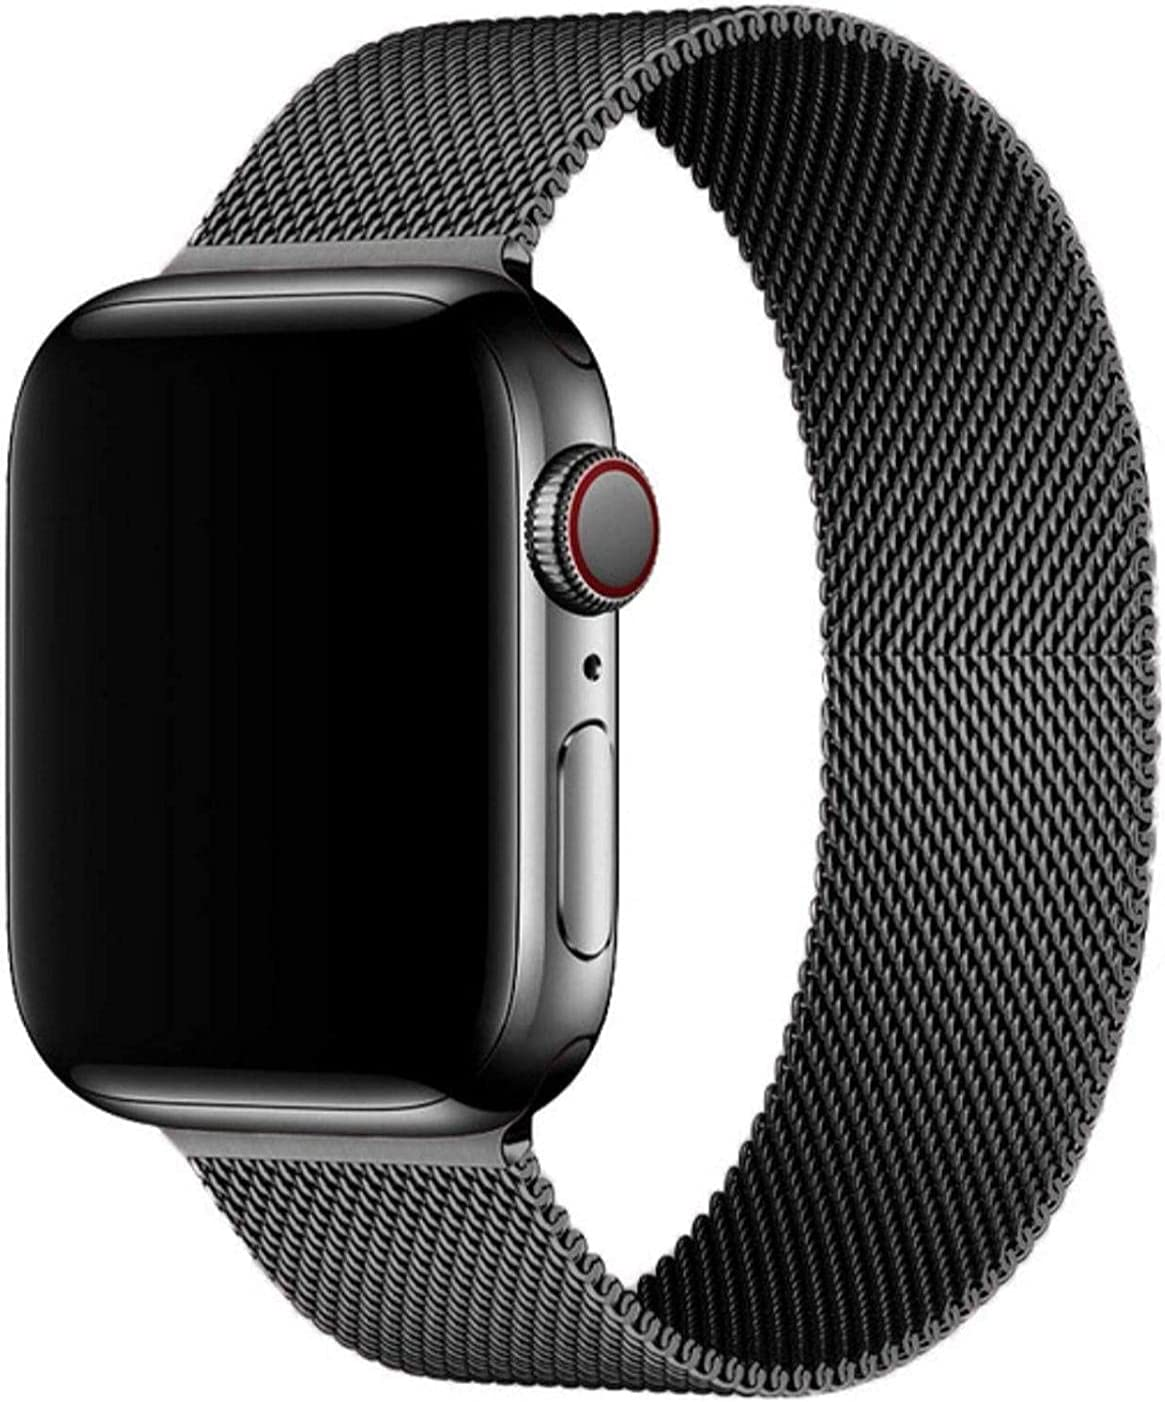 Mediatech Compatible with Apple Watch Bands 44mm 42mm 40mm 38mm Stainless Steel Wristband Mesh Loop Magnetic Closure Adjustable Metal Replacement Strap for iWatch Series 1/2/3/4/5/6/SE 42mm/44mm Black